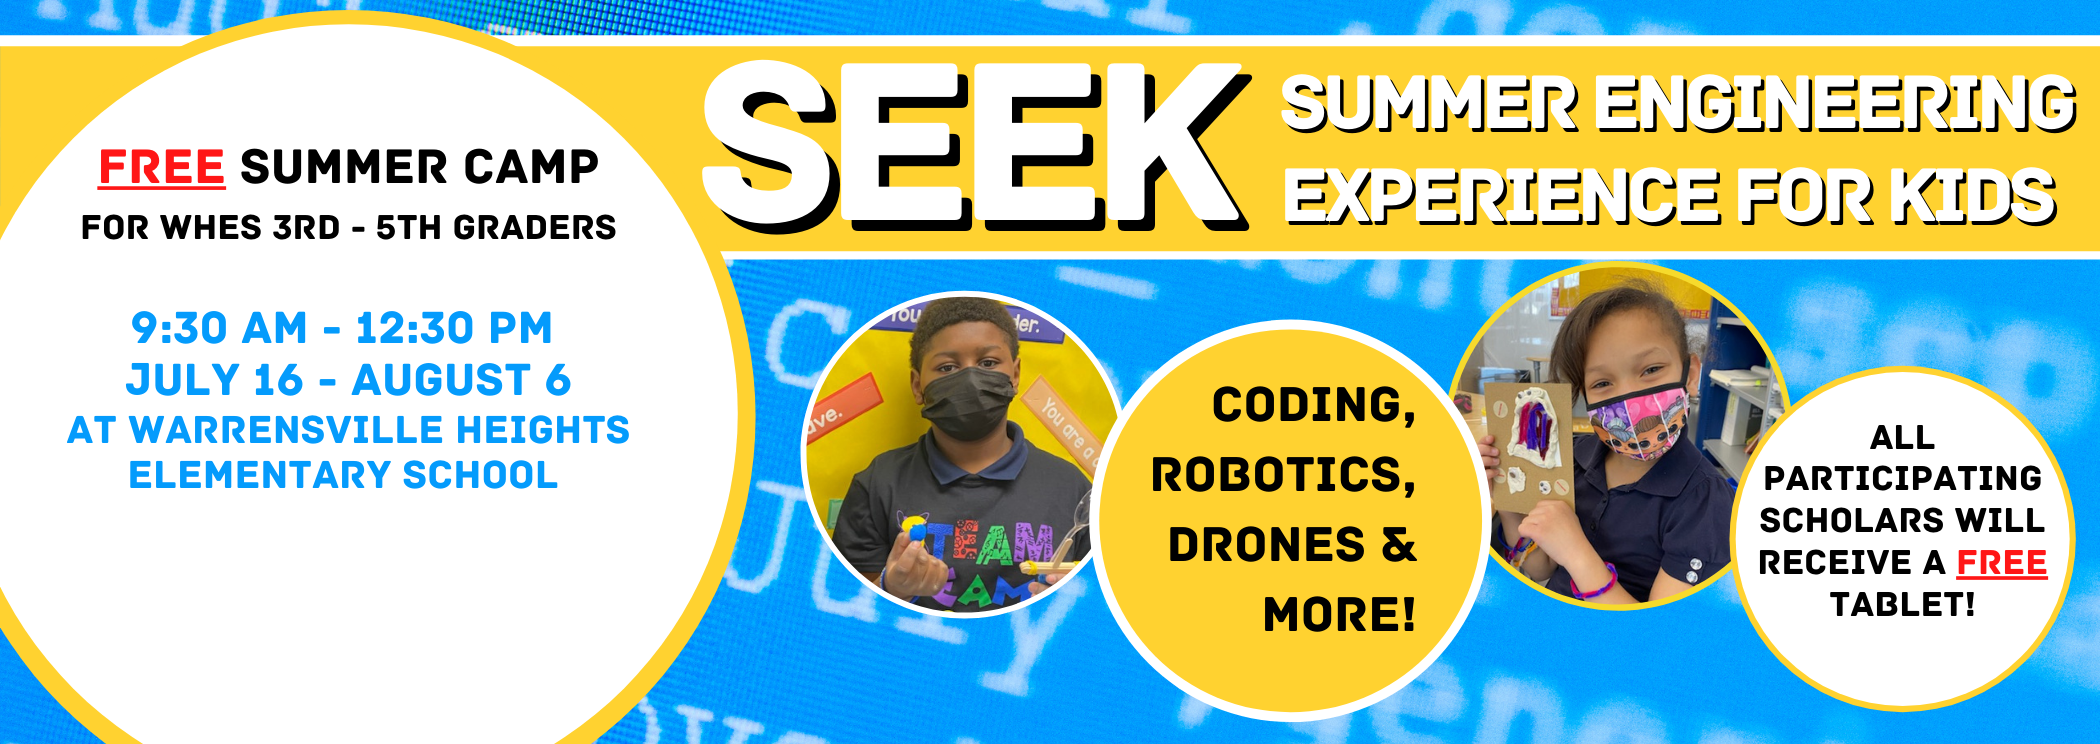 "SEEK SUmmer Engineering Experience for Kids Free Summer Camp for WHES 3 - 5 Graders 9:30 am - 12""20 pm July 16 - August 6 At Warrensville HEights Elementary School Coding, Robotics, Drones & more, All participating scholars will recieve a free tablet"